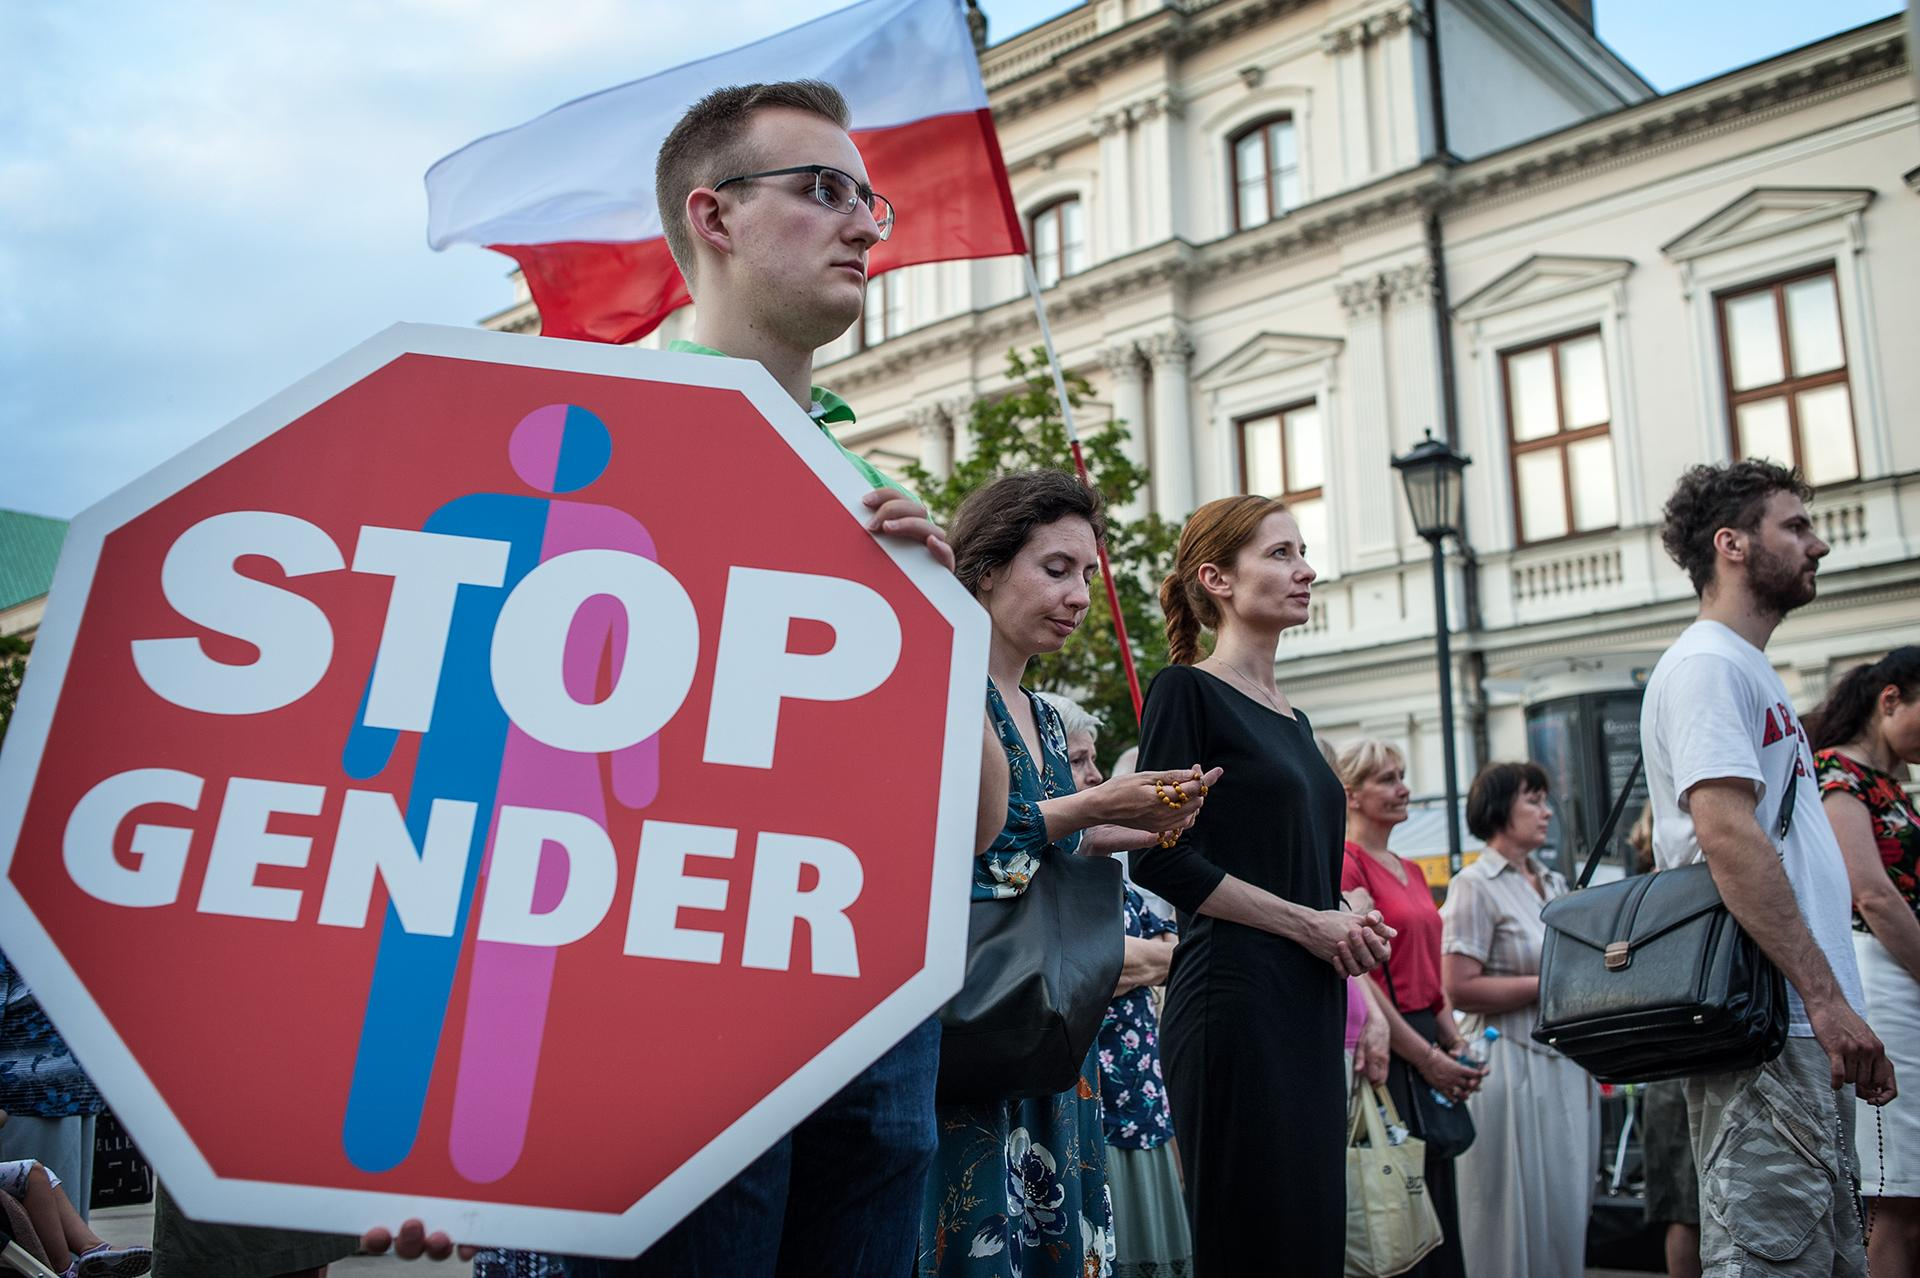 """Photo 2: Public prayer against the """"gender ideology"""" and to apologize for the sin of sodomy. These types of prayers are organized in several cities in Poland by private religious associations and foundations with the support and participation of the Catholic Church. / Warsaw, city center, 2019."""